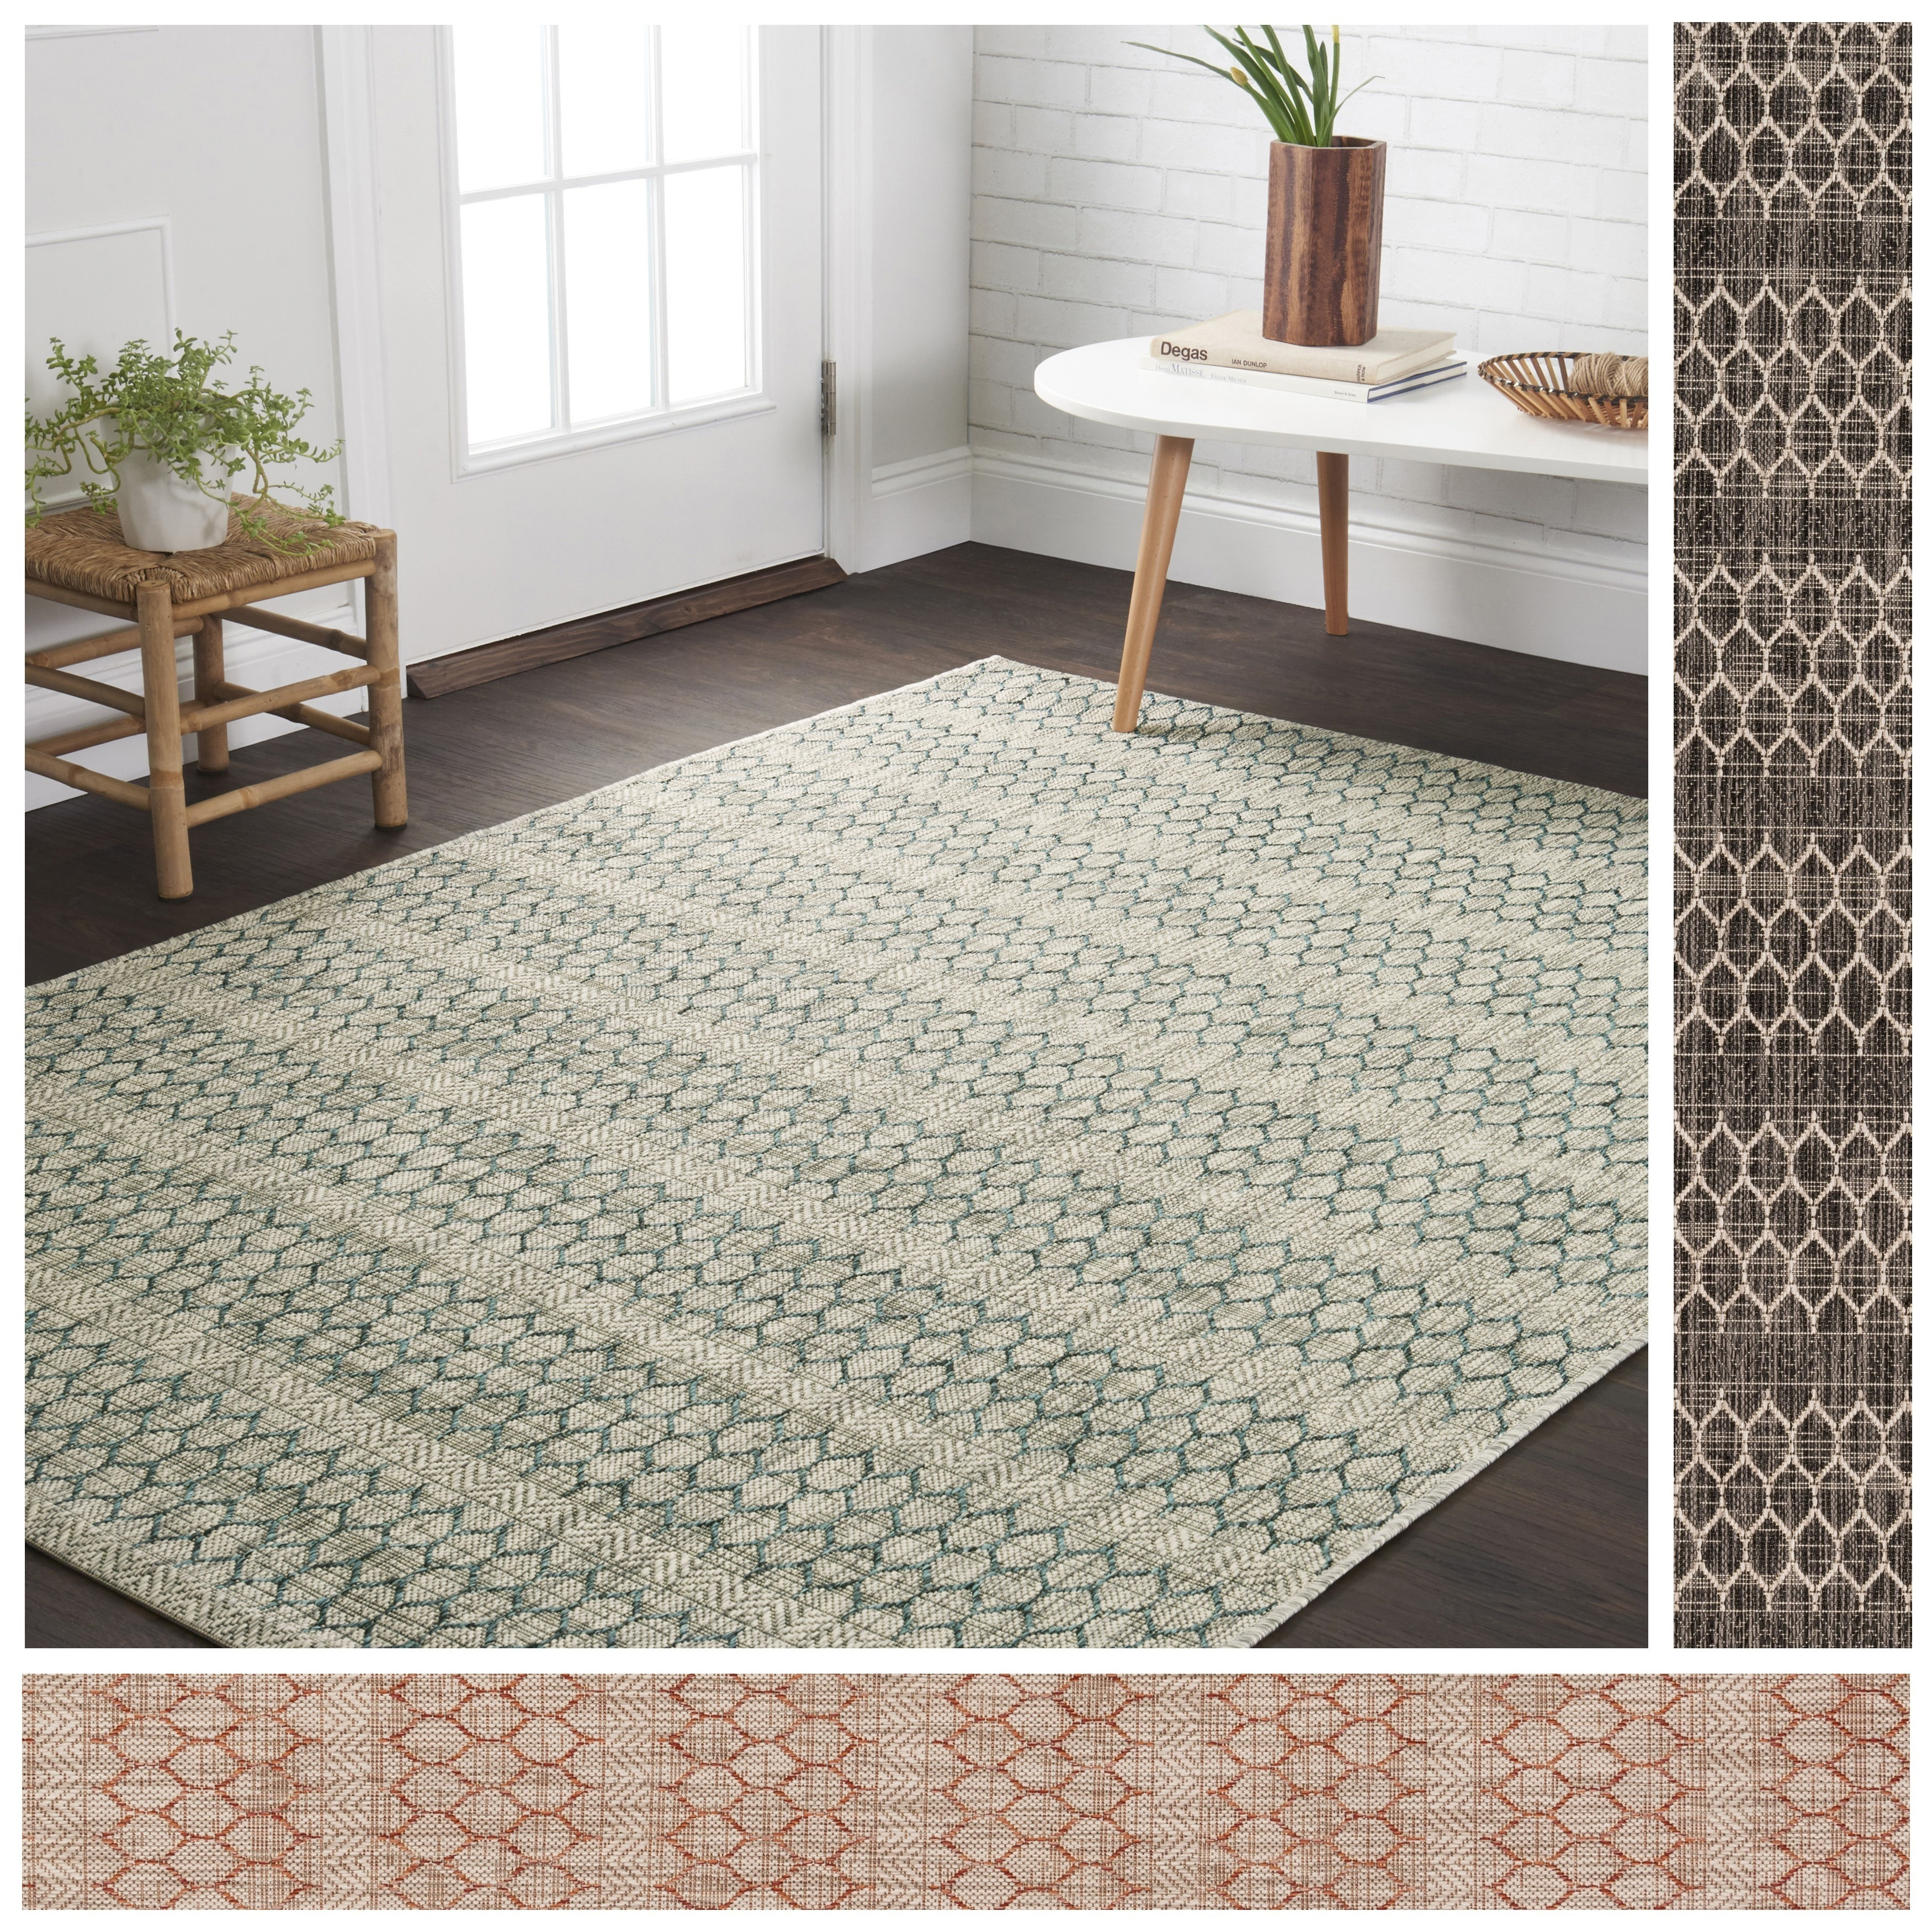 Havenside home wilminton indoor outdoor havannah geometric area rug 710